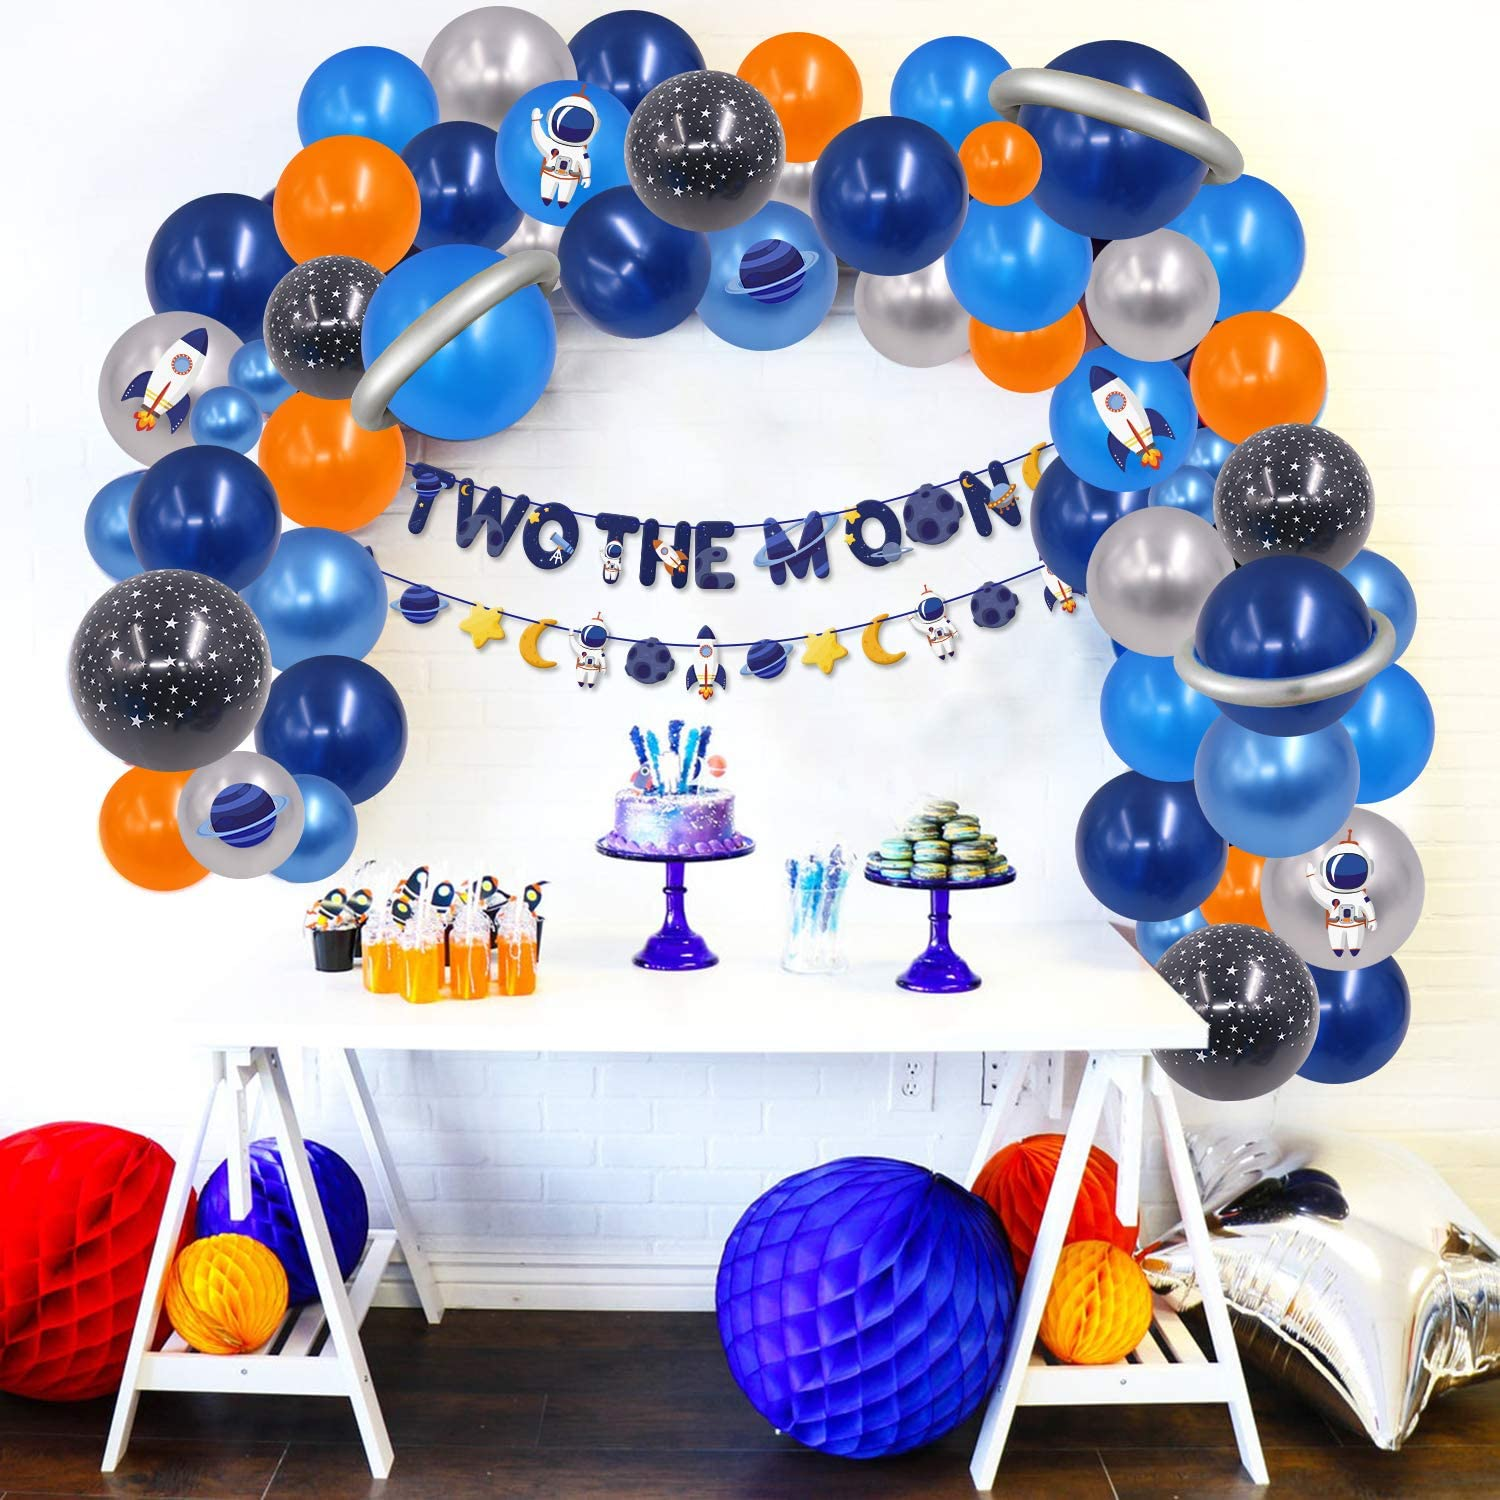 Two The Moon Banner Outer Space Garland Balloon Kids 2nd Birthday Party Astronaut Themed Party Decor for Boy Arch Backdrop Supplies